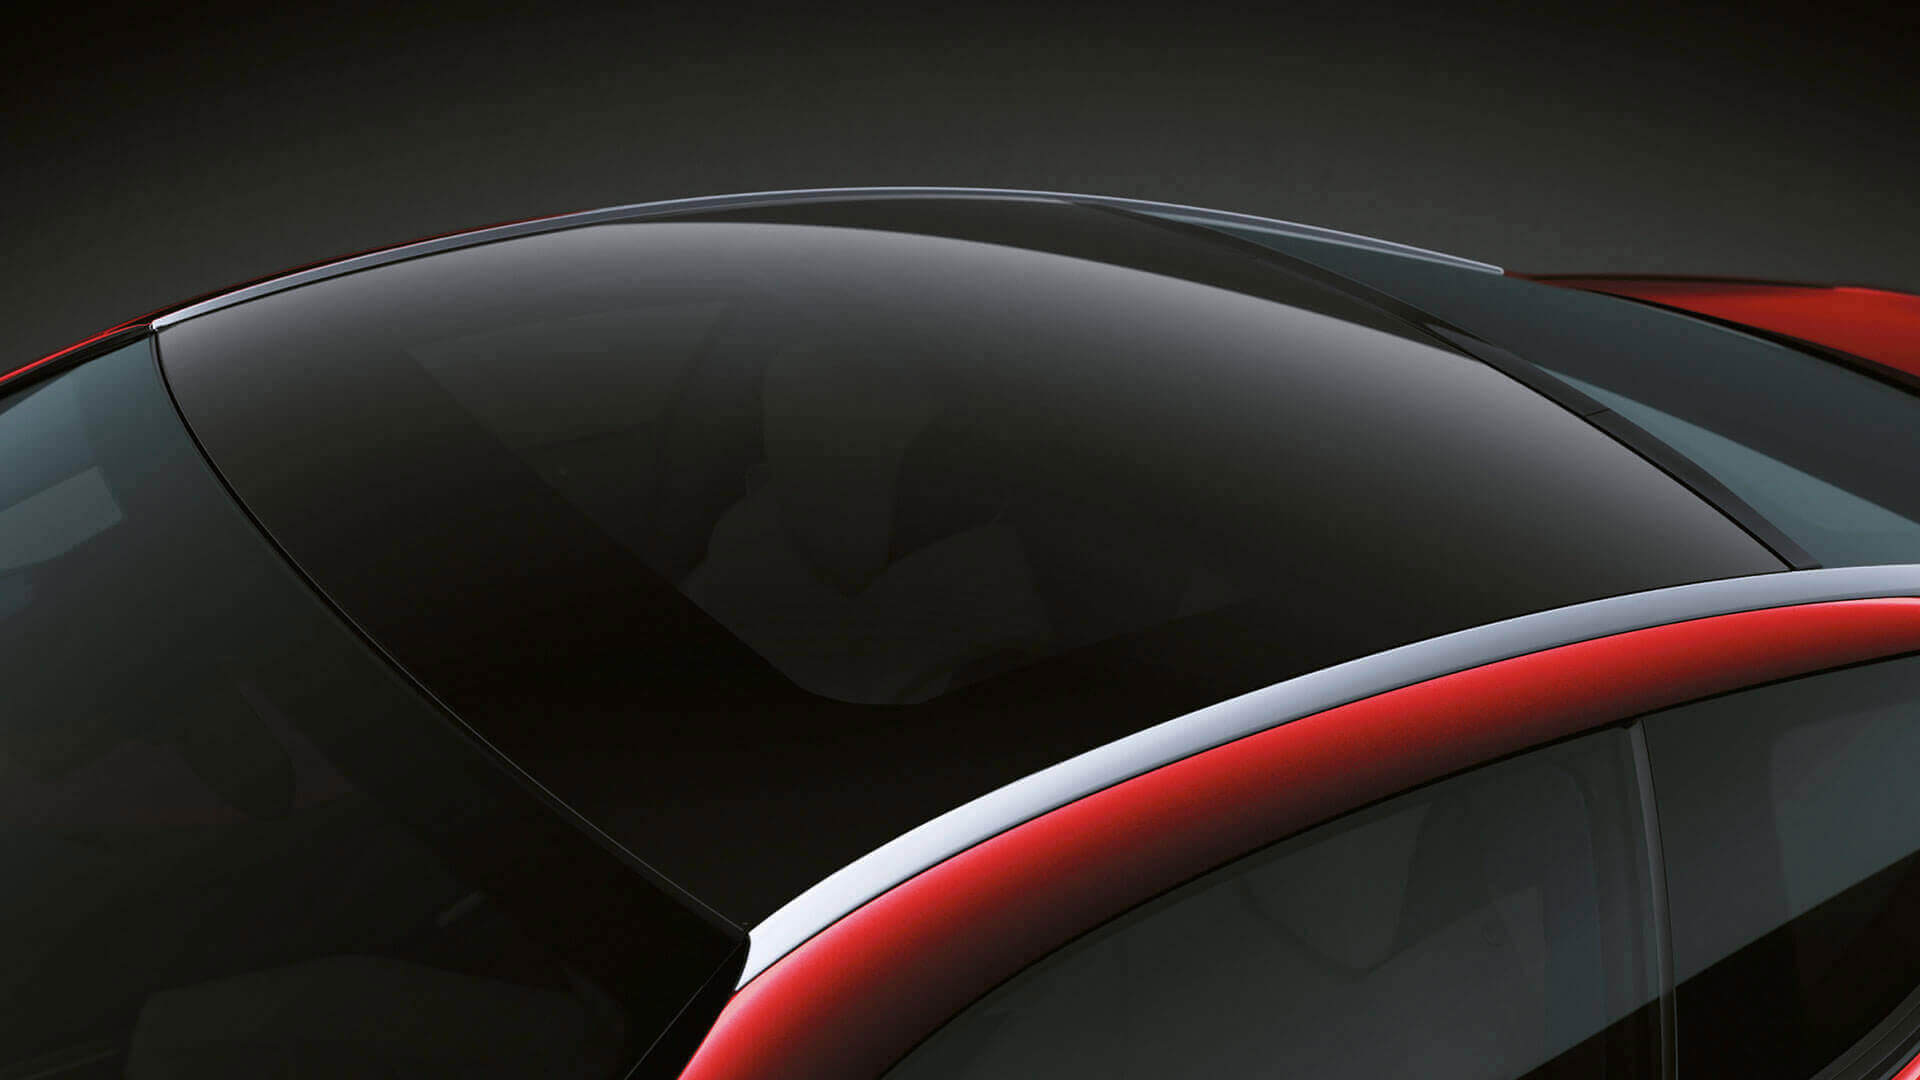 2017 lexus lc 500h features glass roof